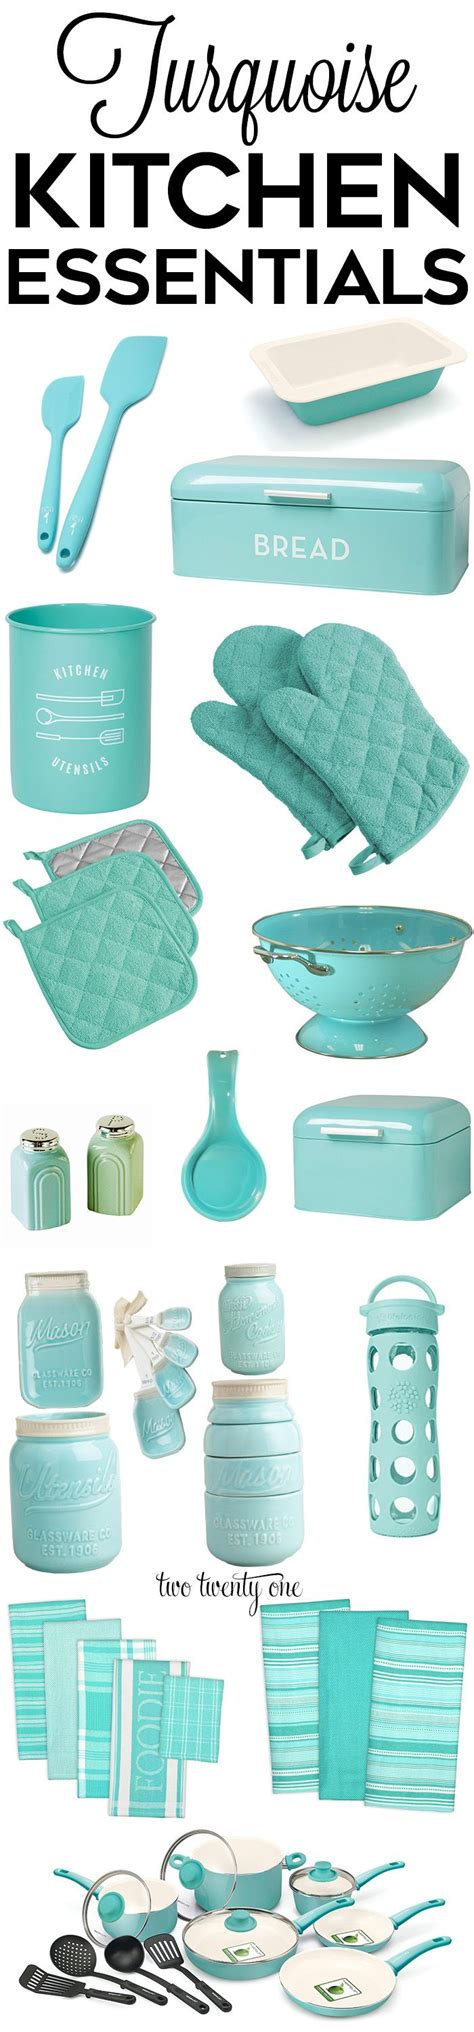 turquoise kitchen accessories turquoise kitchen decor appliances new decorating ideas 2967